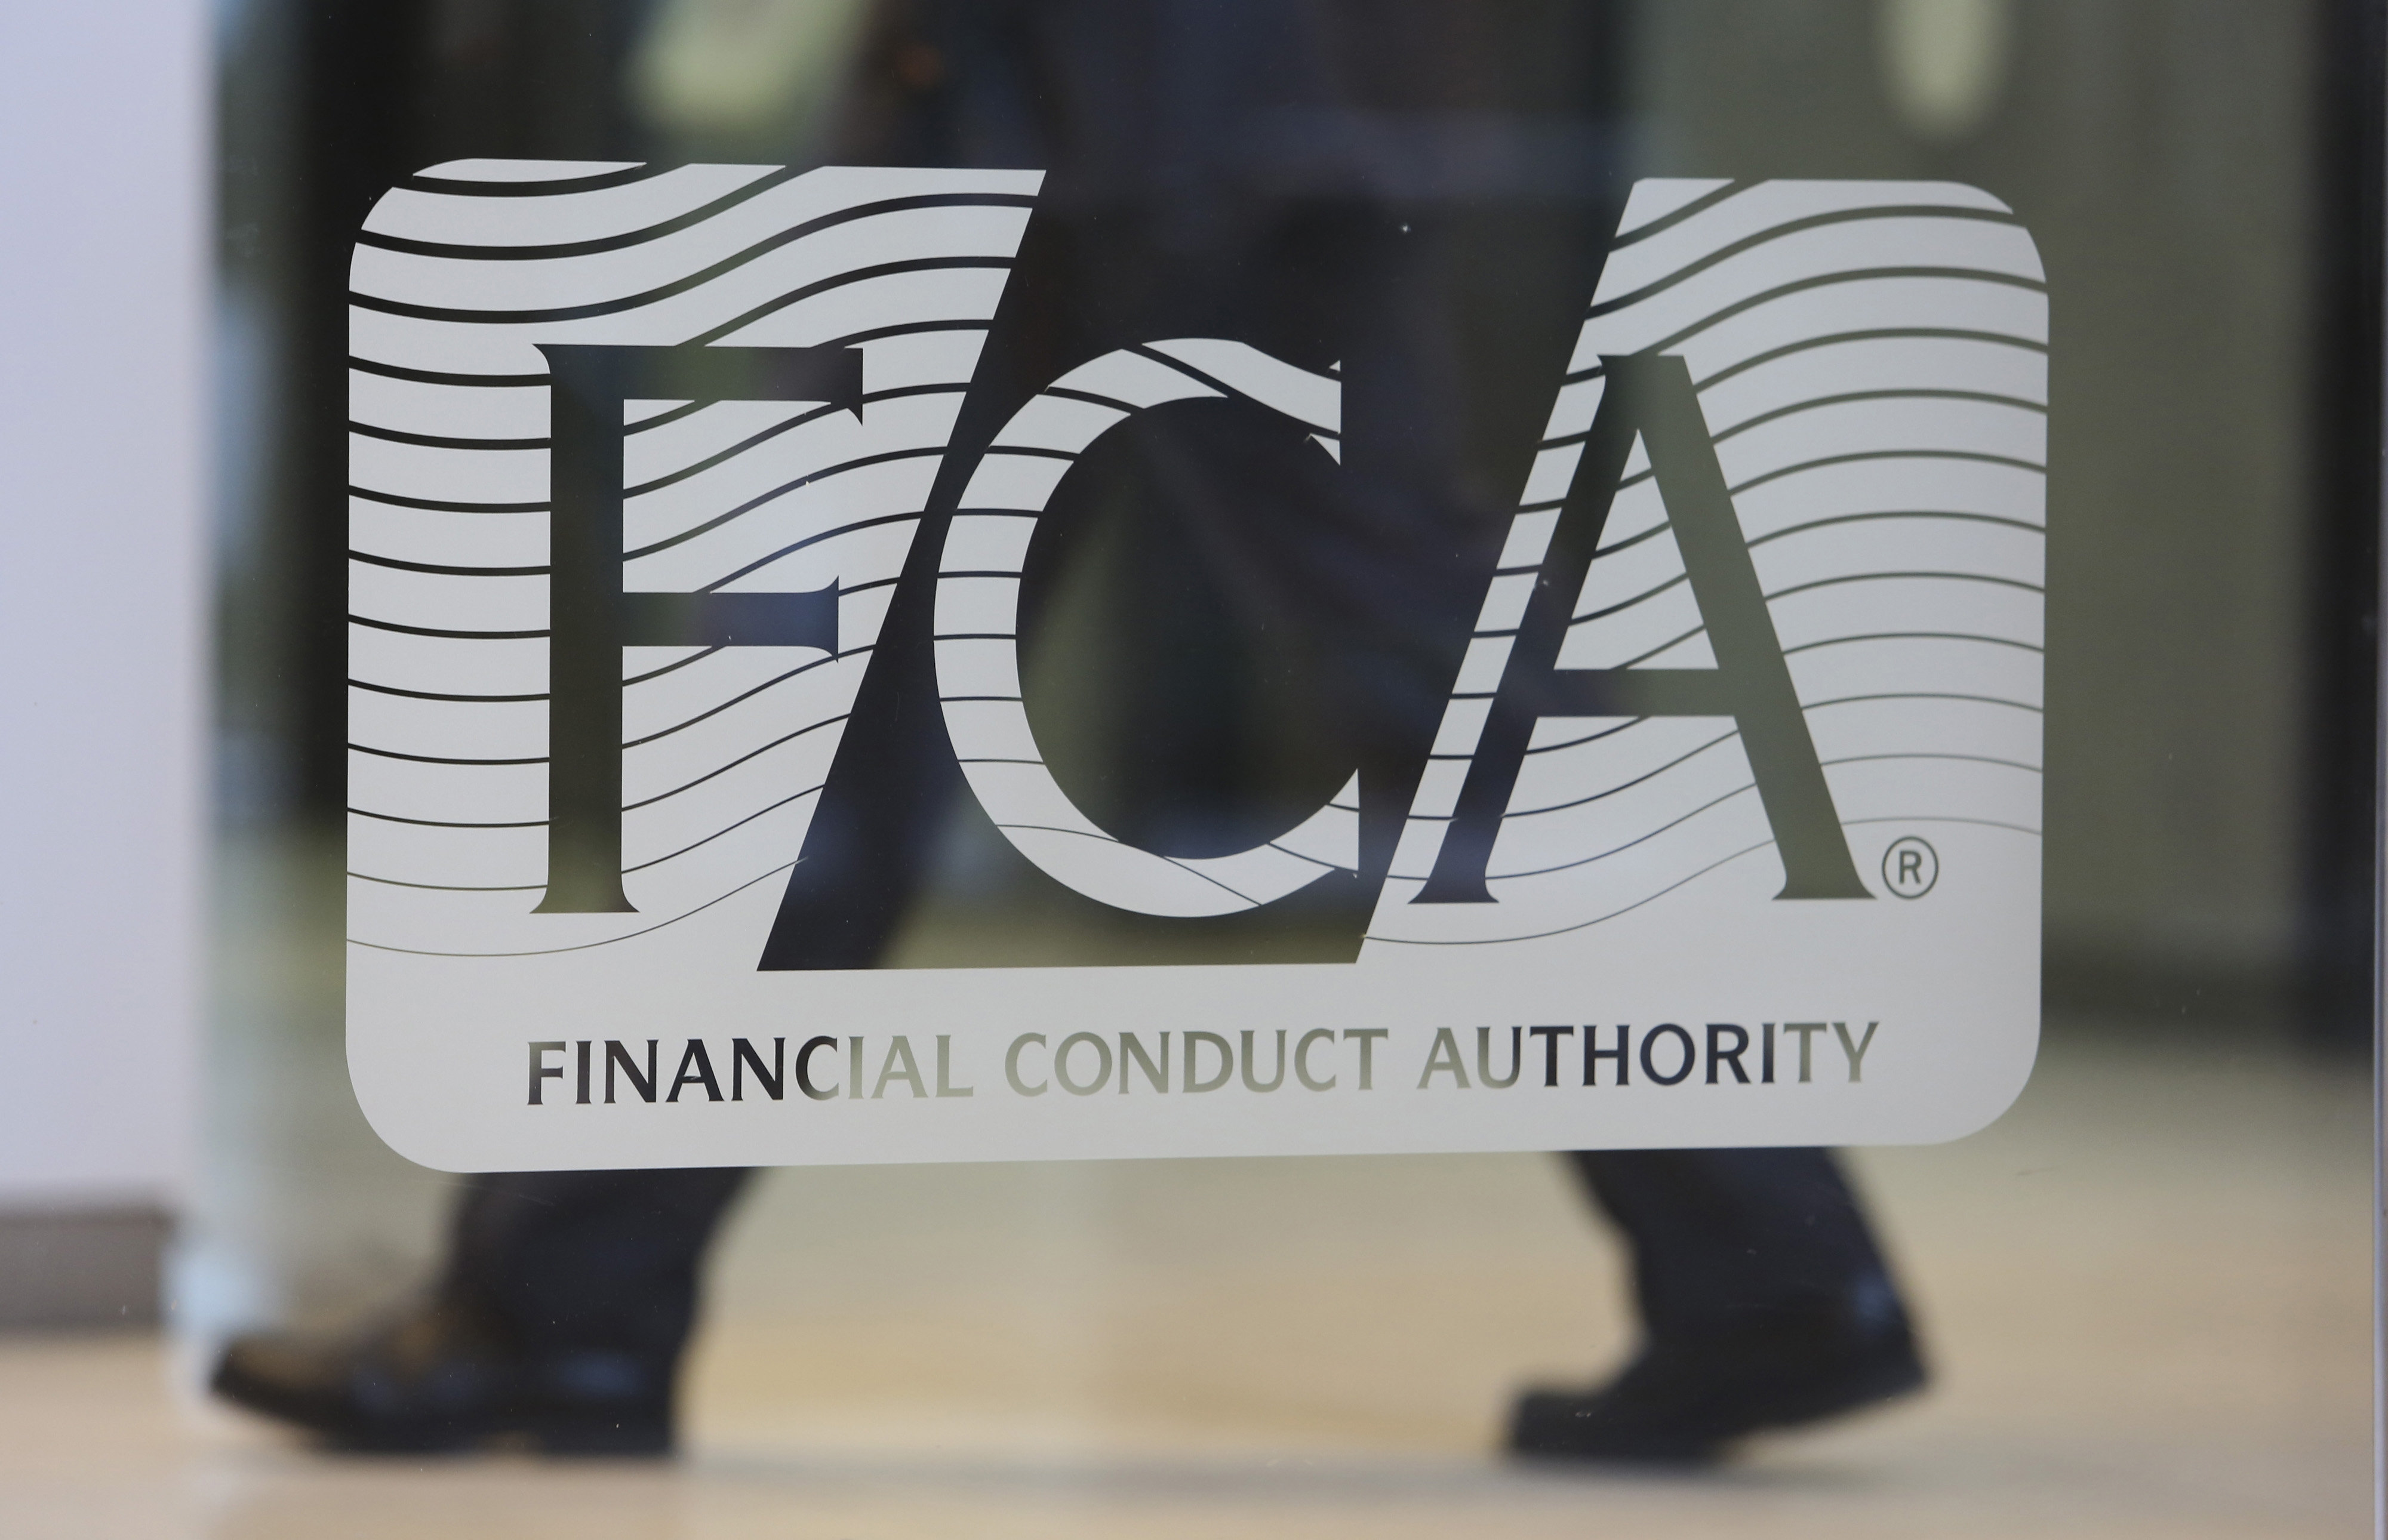 British Financial Regulators Look Closely at Cryptocurrency Groups